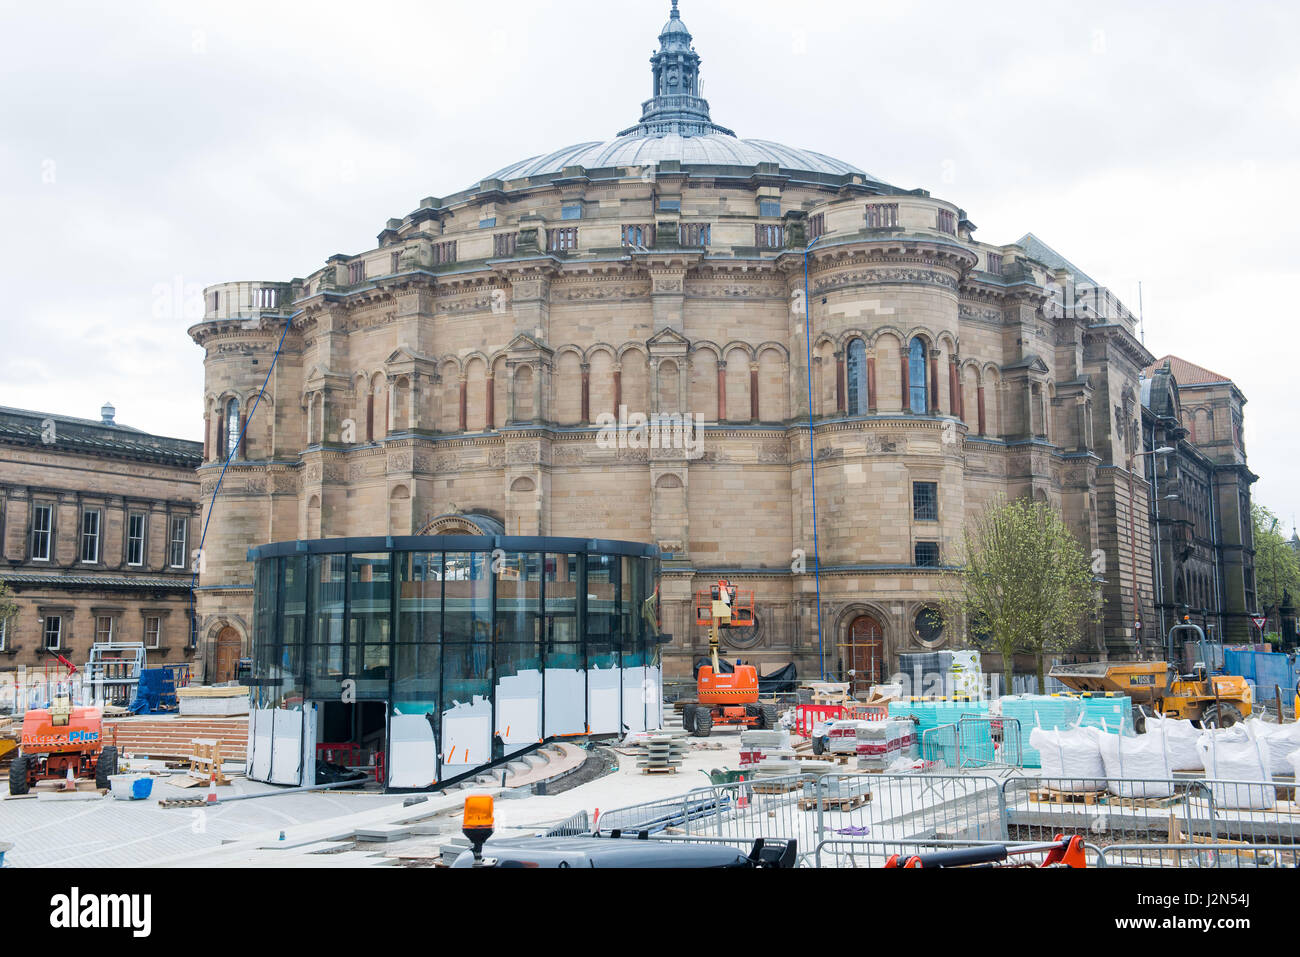 WWW.IANGEORGESONPHOTOGRAPHY.CO.UK Picture: Bristo Square, McEwan Hall refurbished - Stock Image